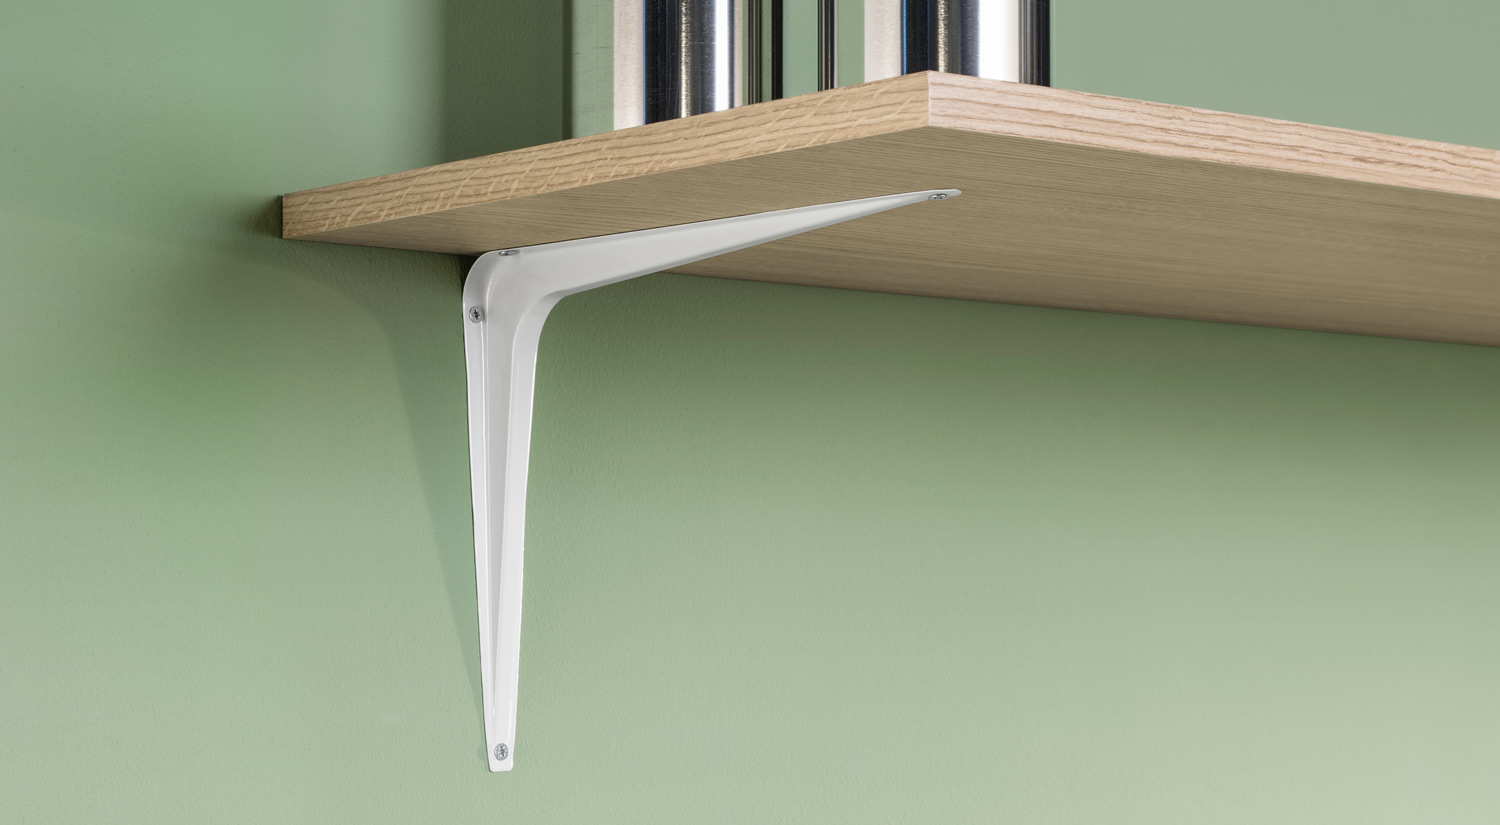 Metal Shelf Brackets - STANDARD metal white in the storage room